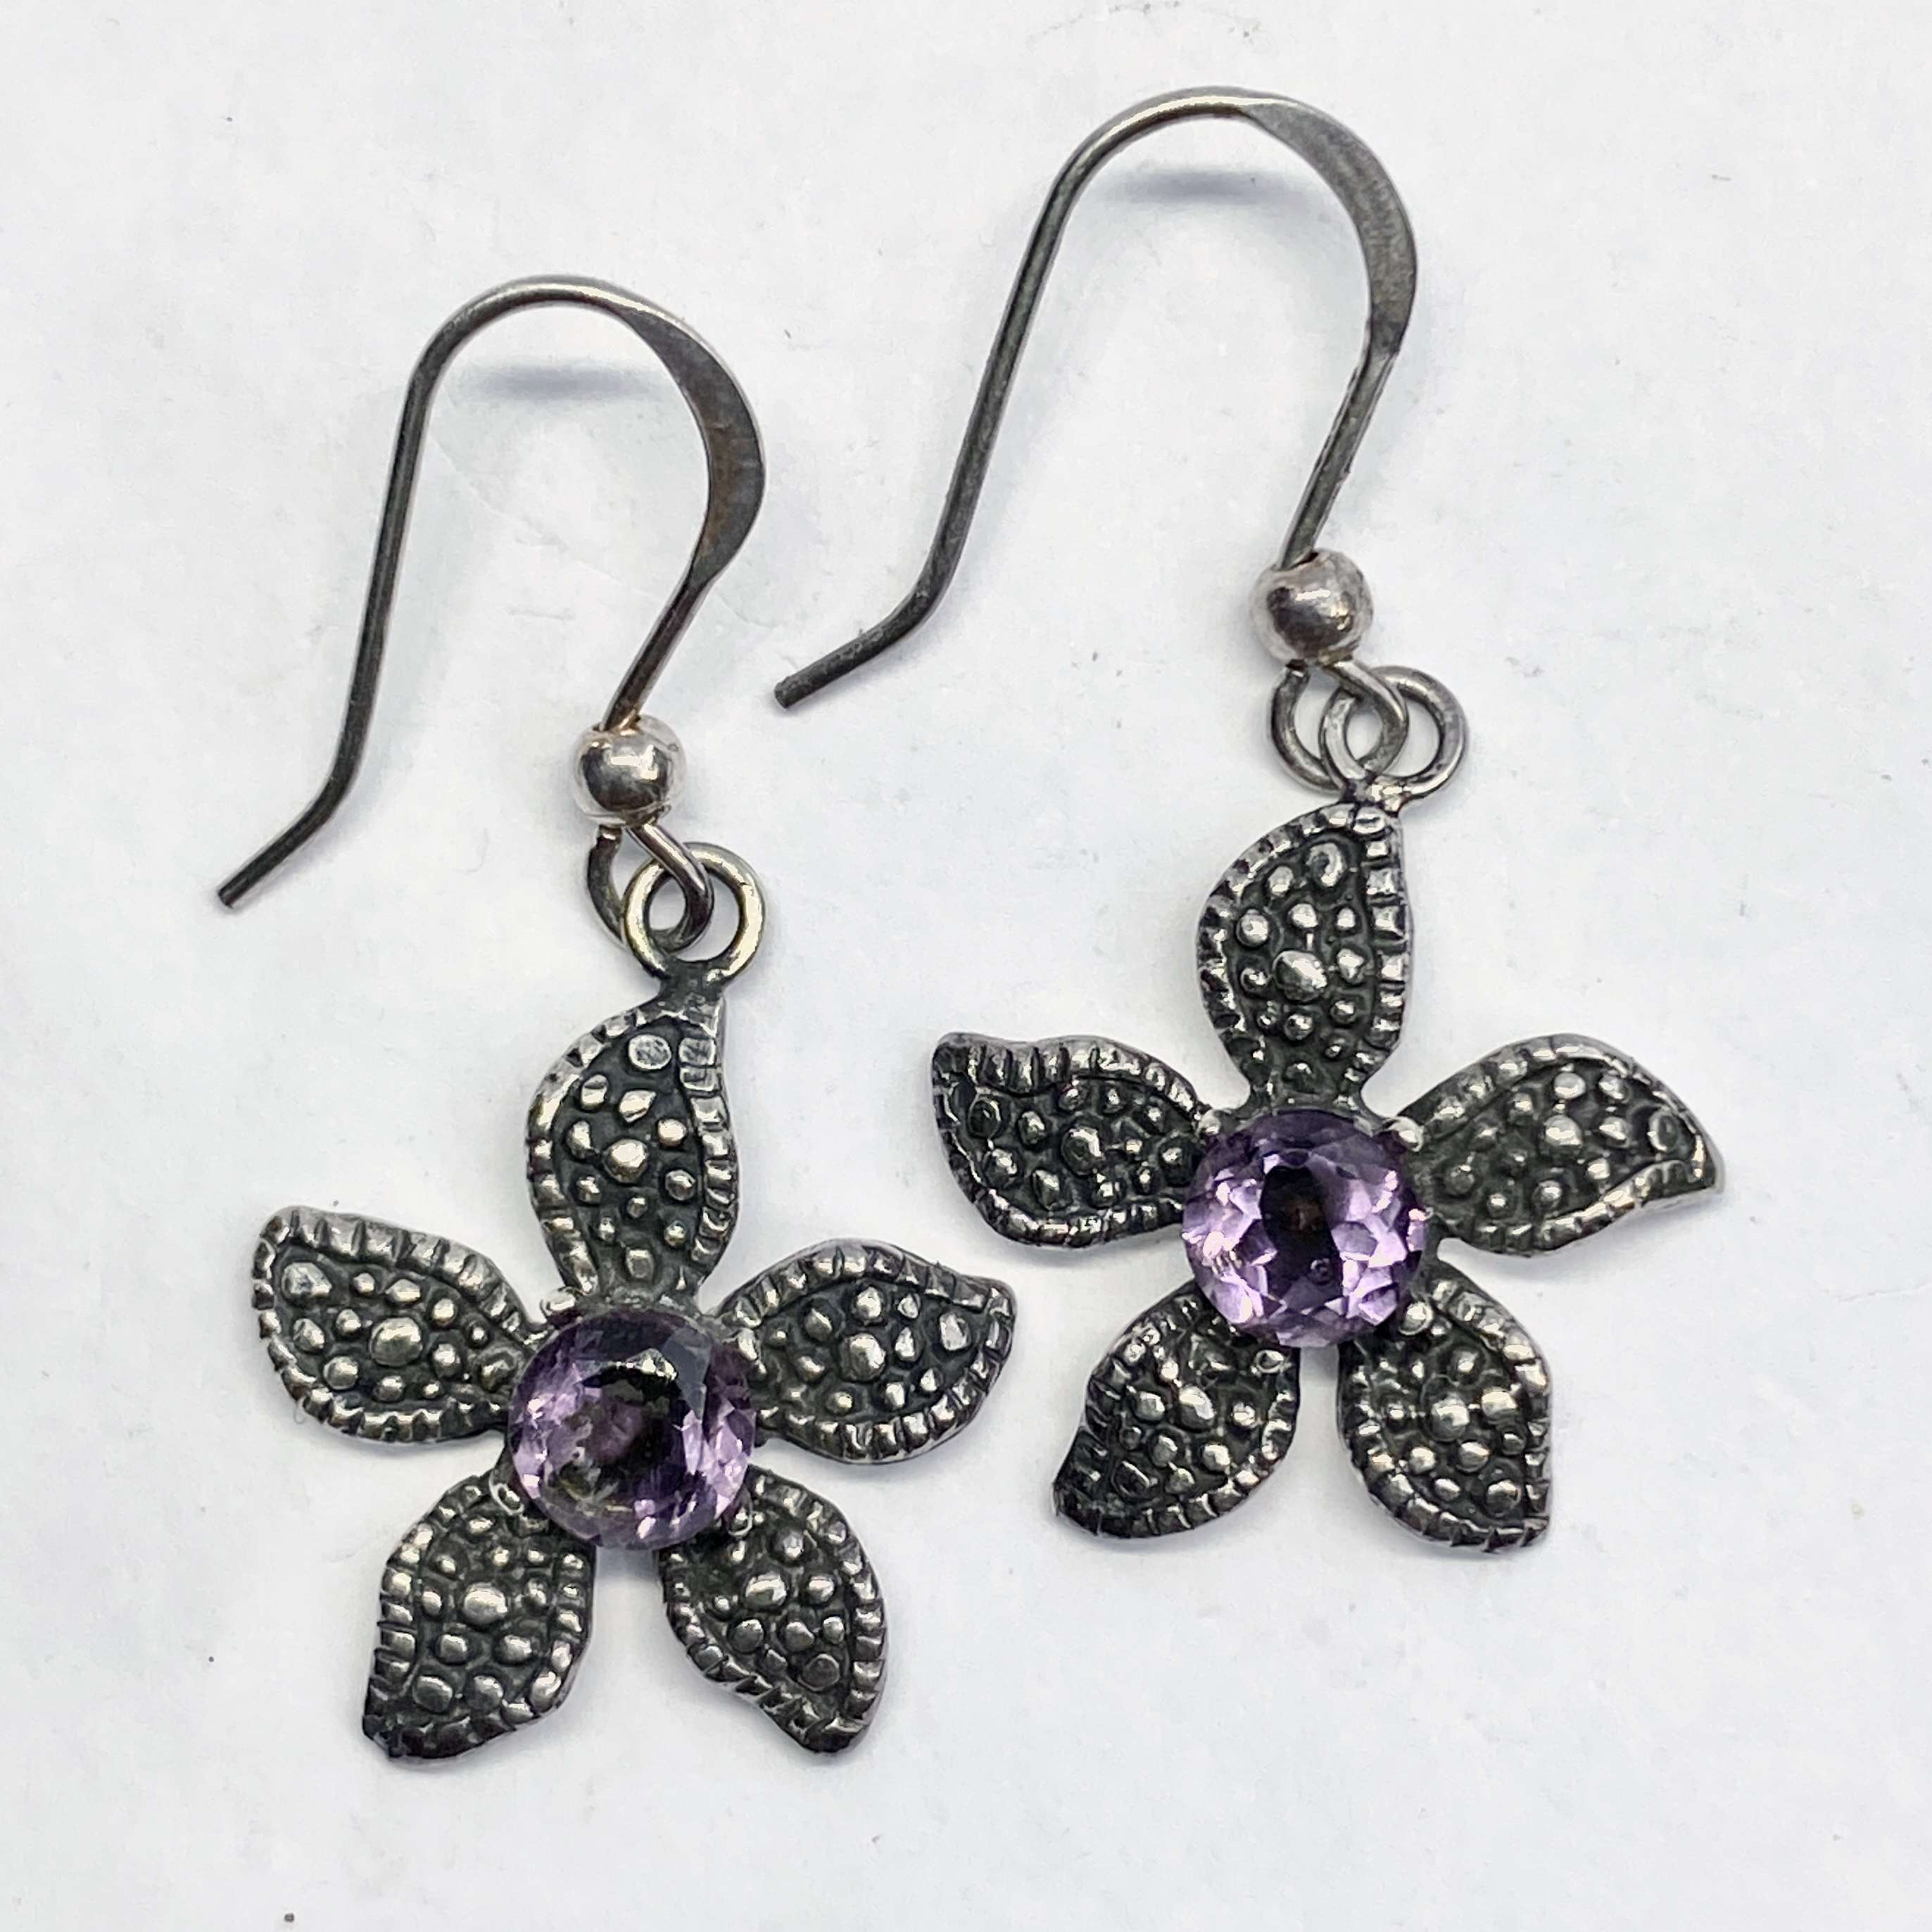 (UNIQUE 925 BALI SILVER DAISY EARRINGS WITH AMETHYST)